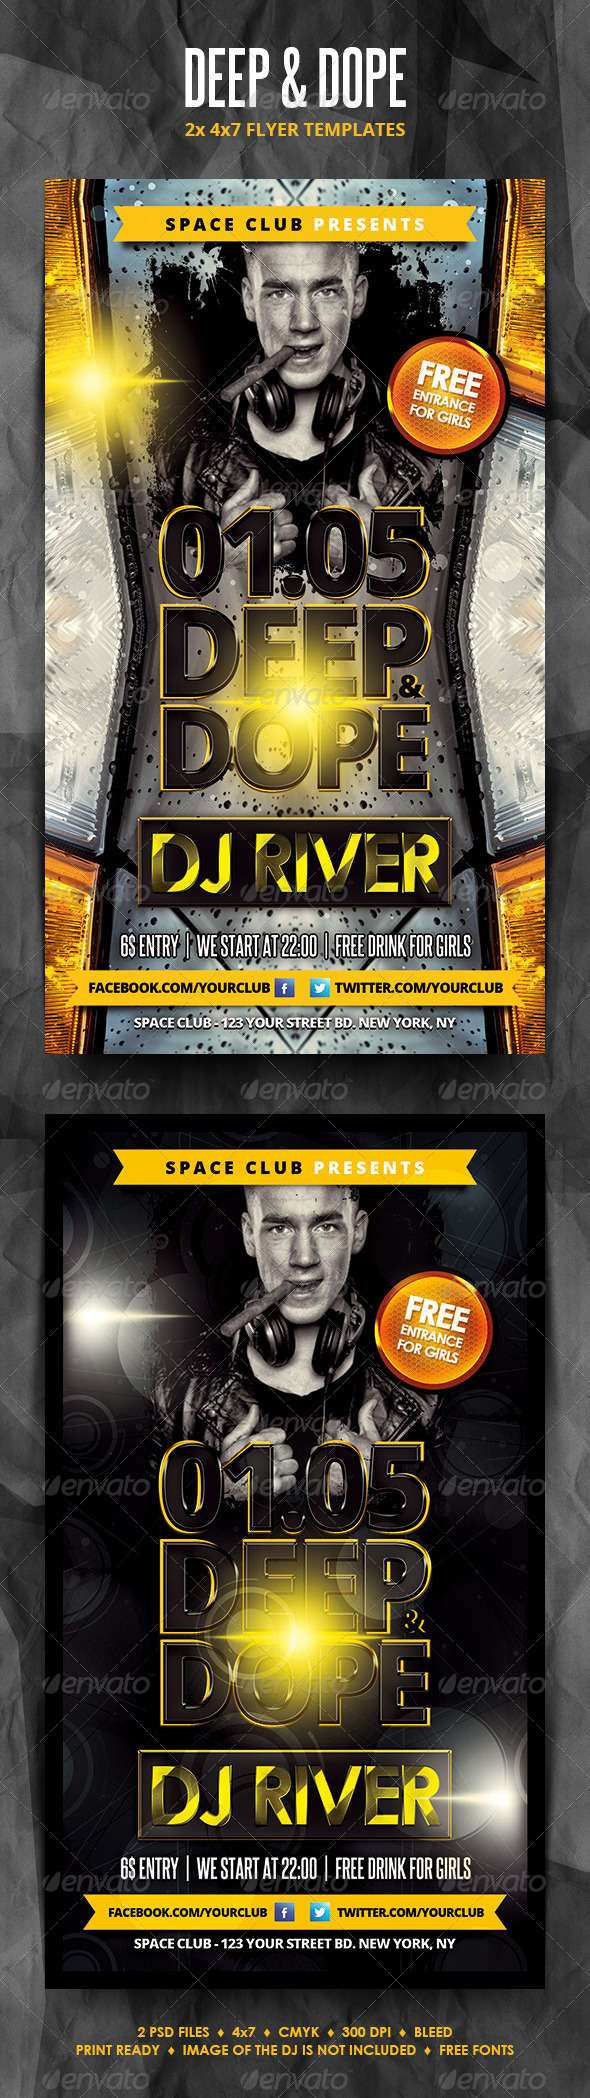 Deep and Dope Party Flyers - Clubs & Parties Events